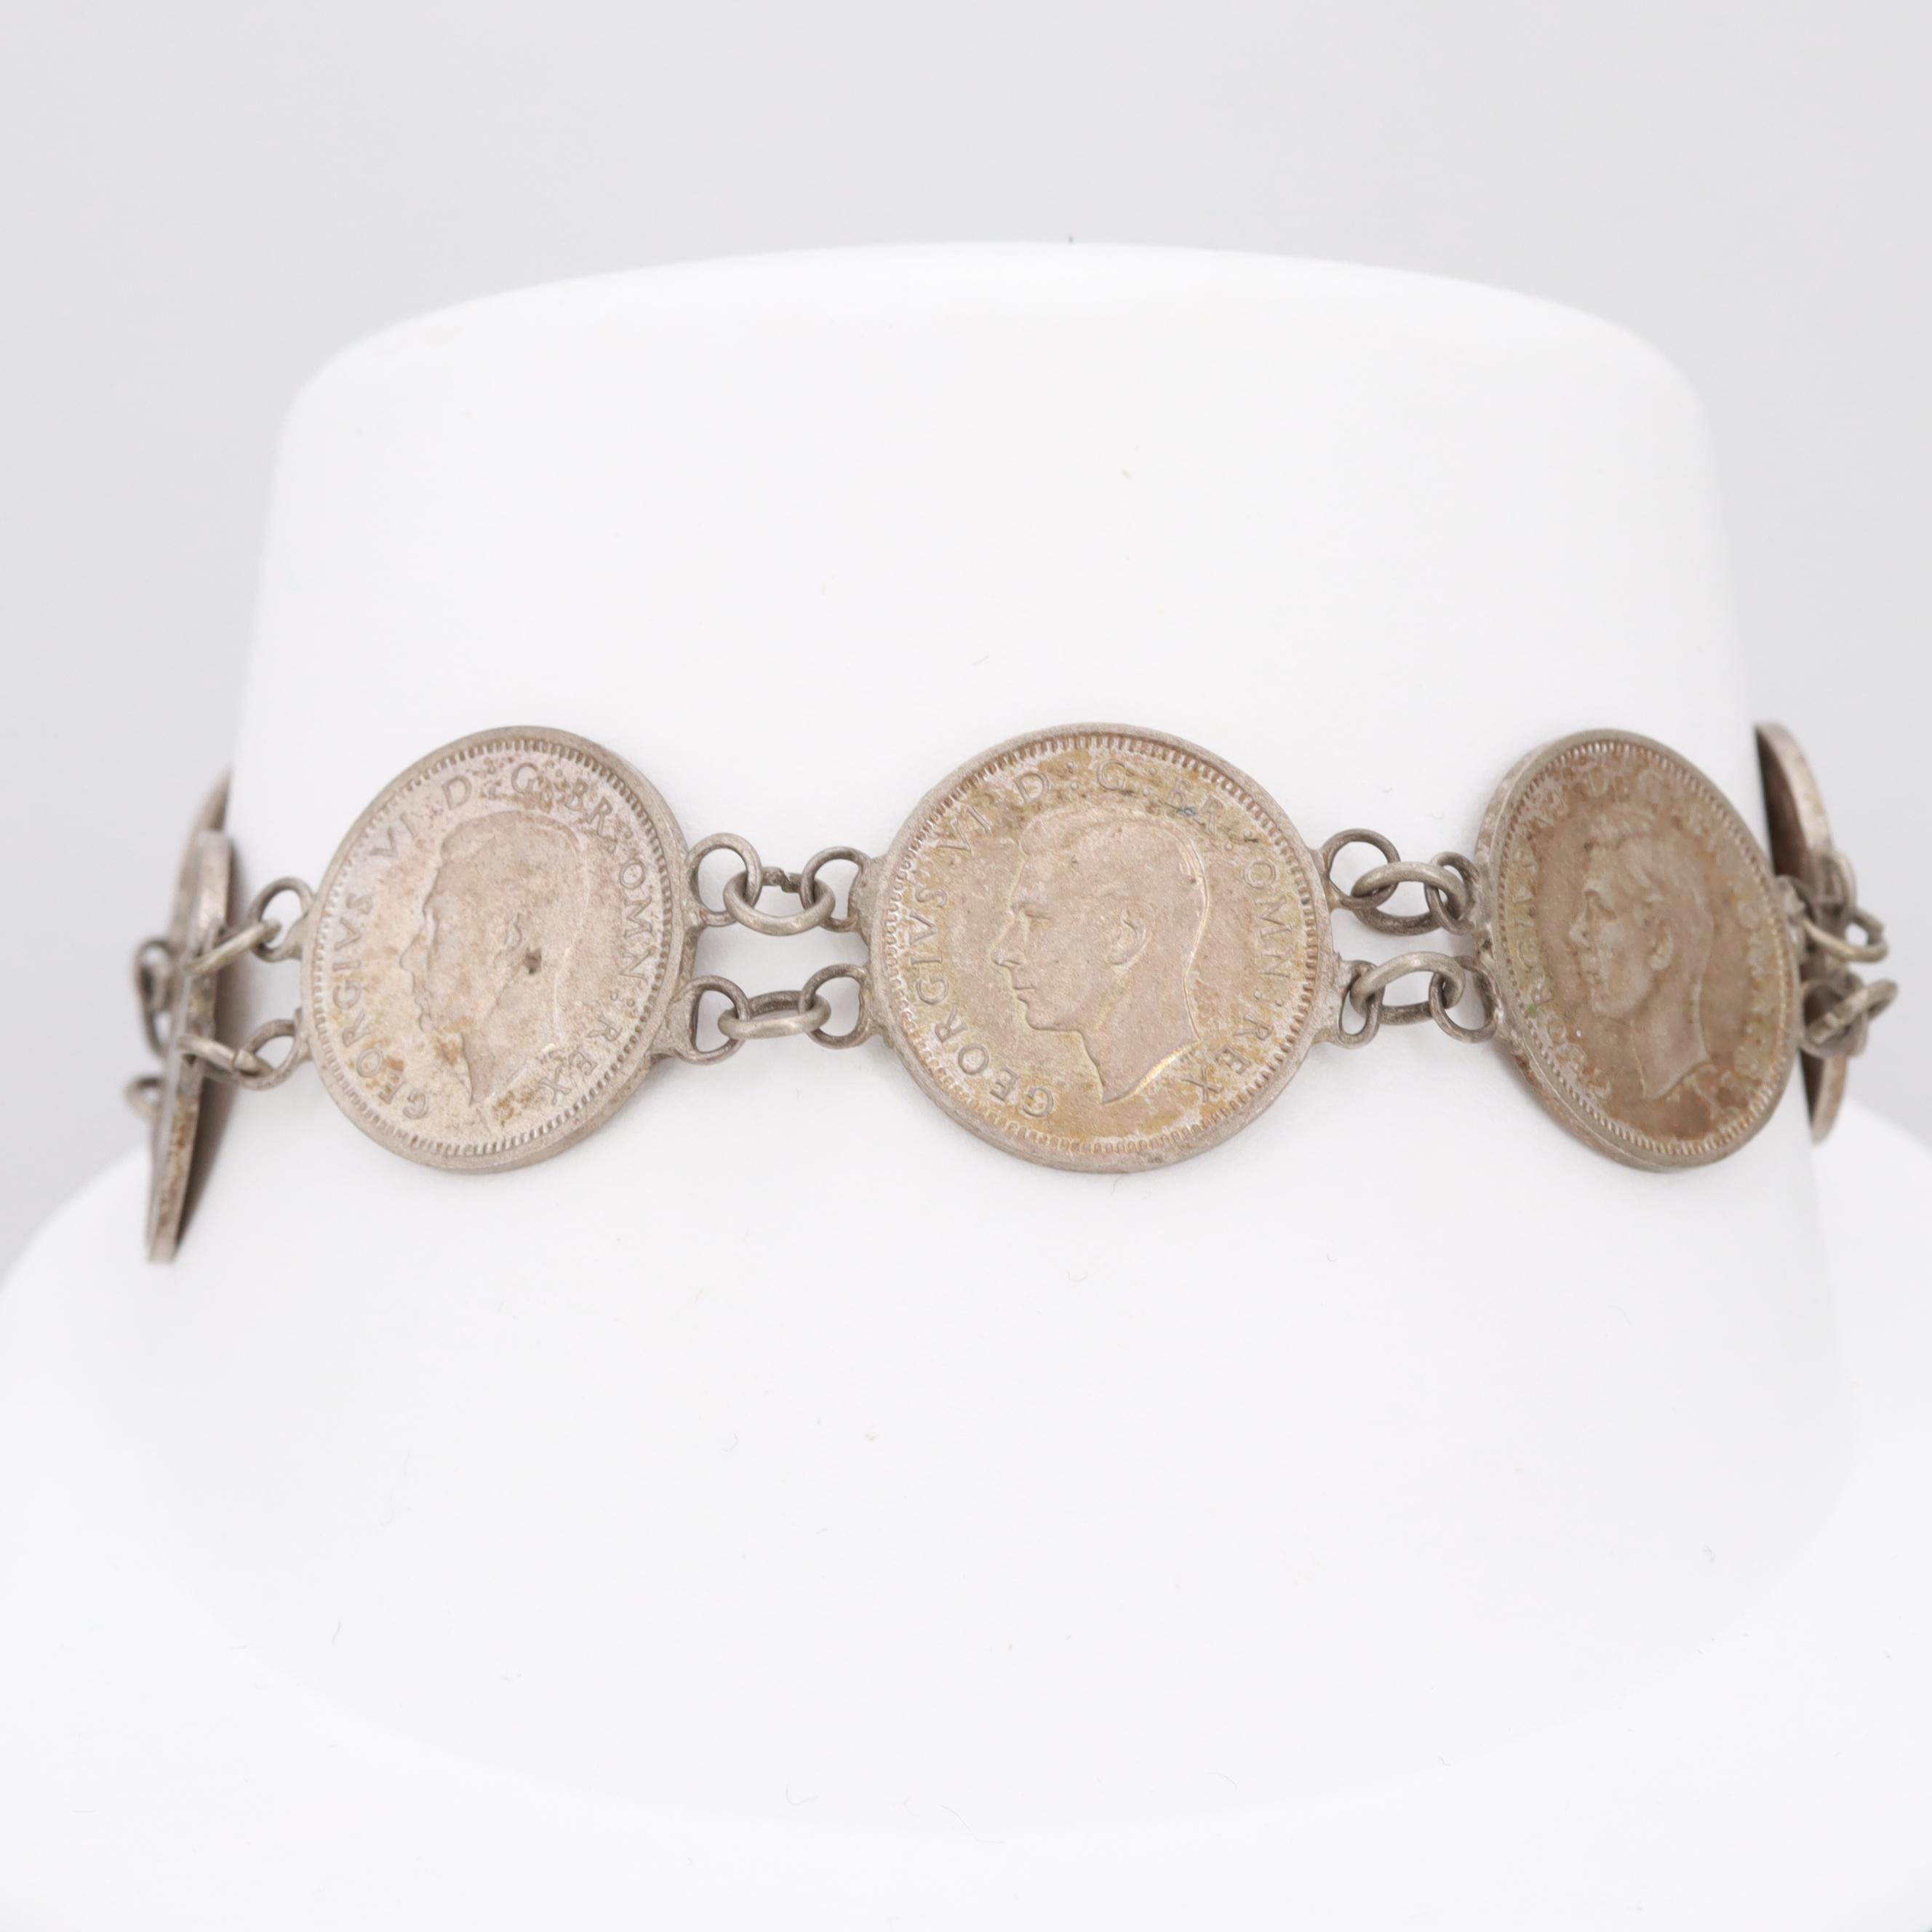 800 Silver Bracelet with Circa 1942 Great Britain Silver Three Pence Coins